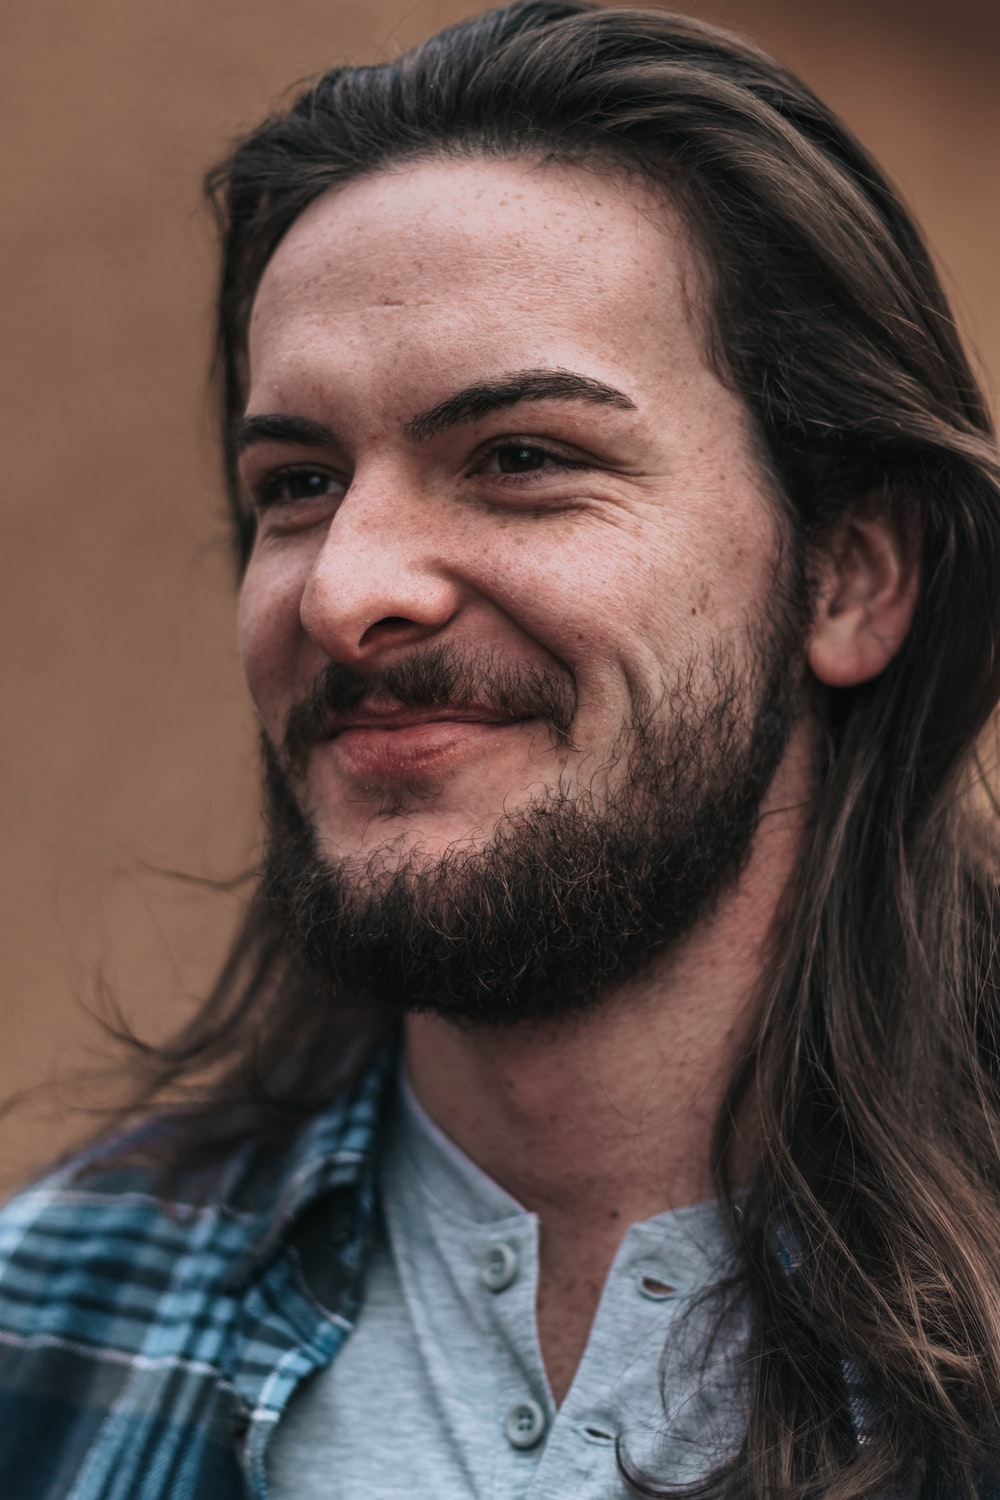 smiling man in blue and black plaid shirt